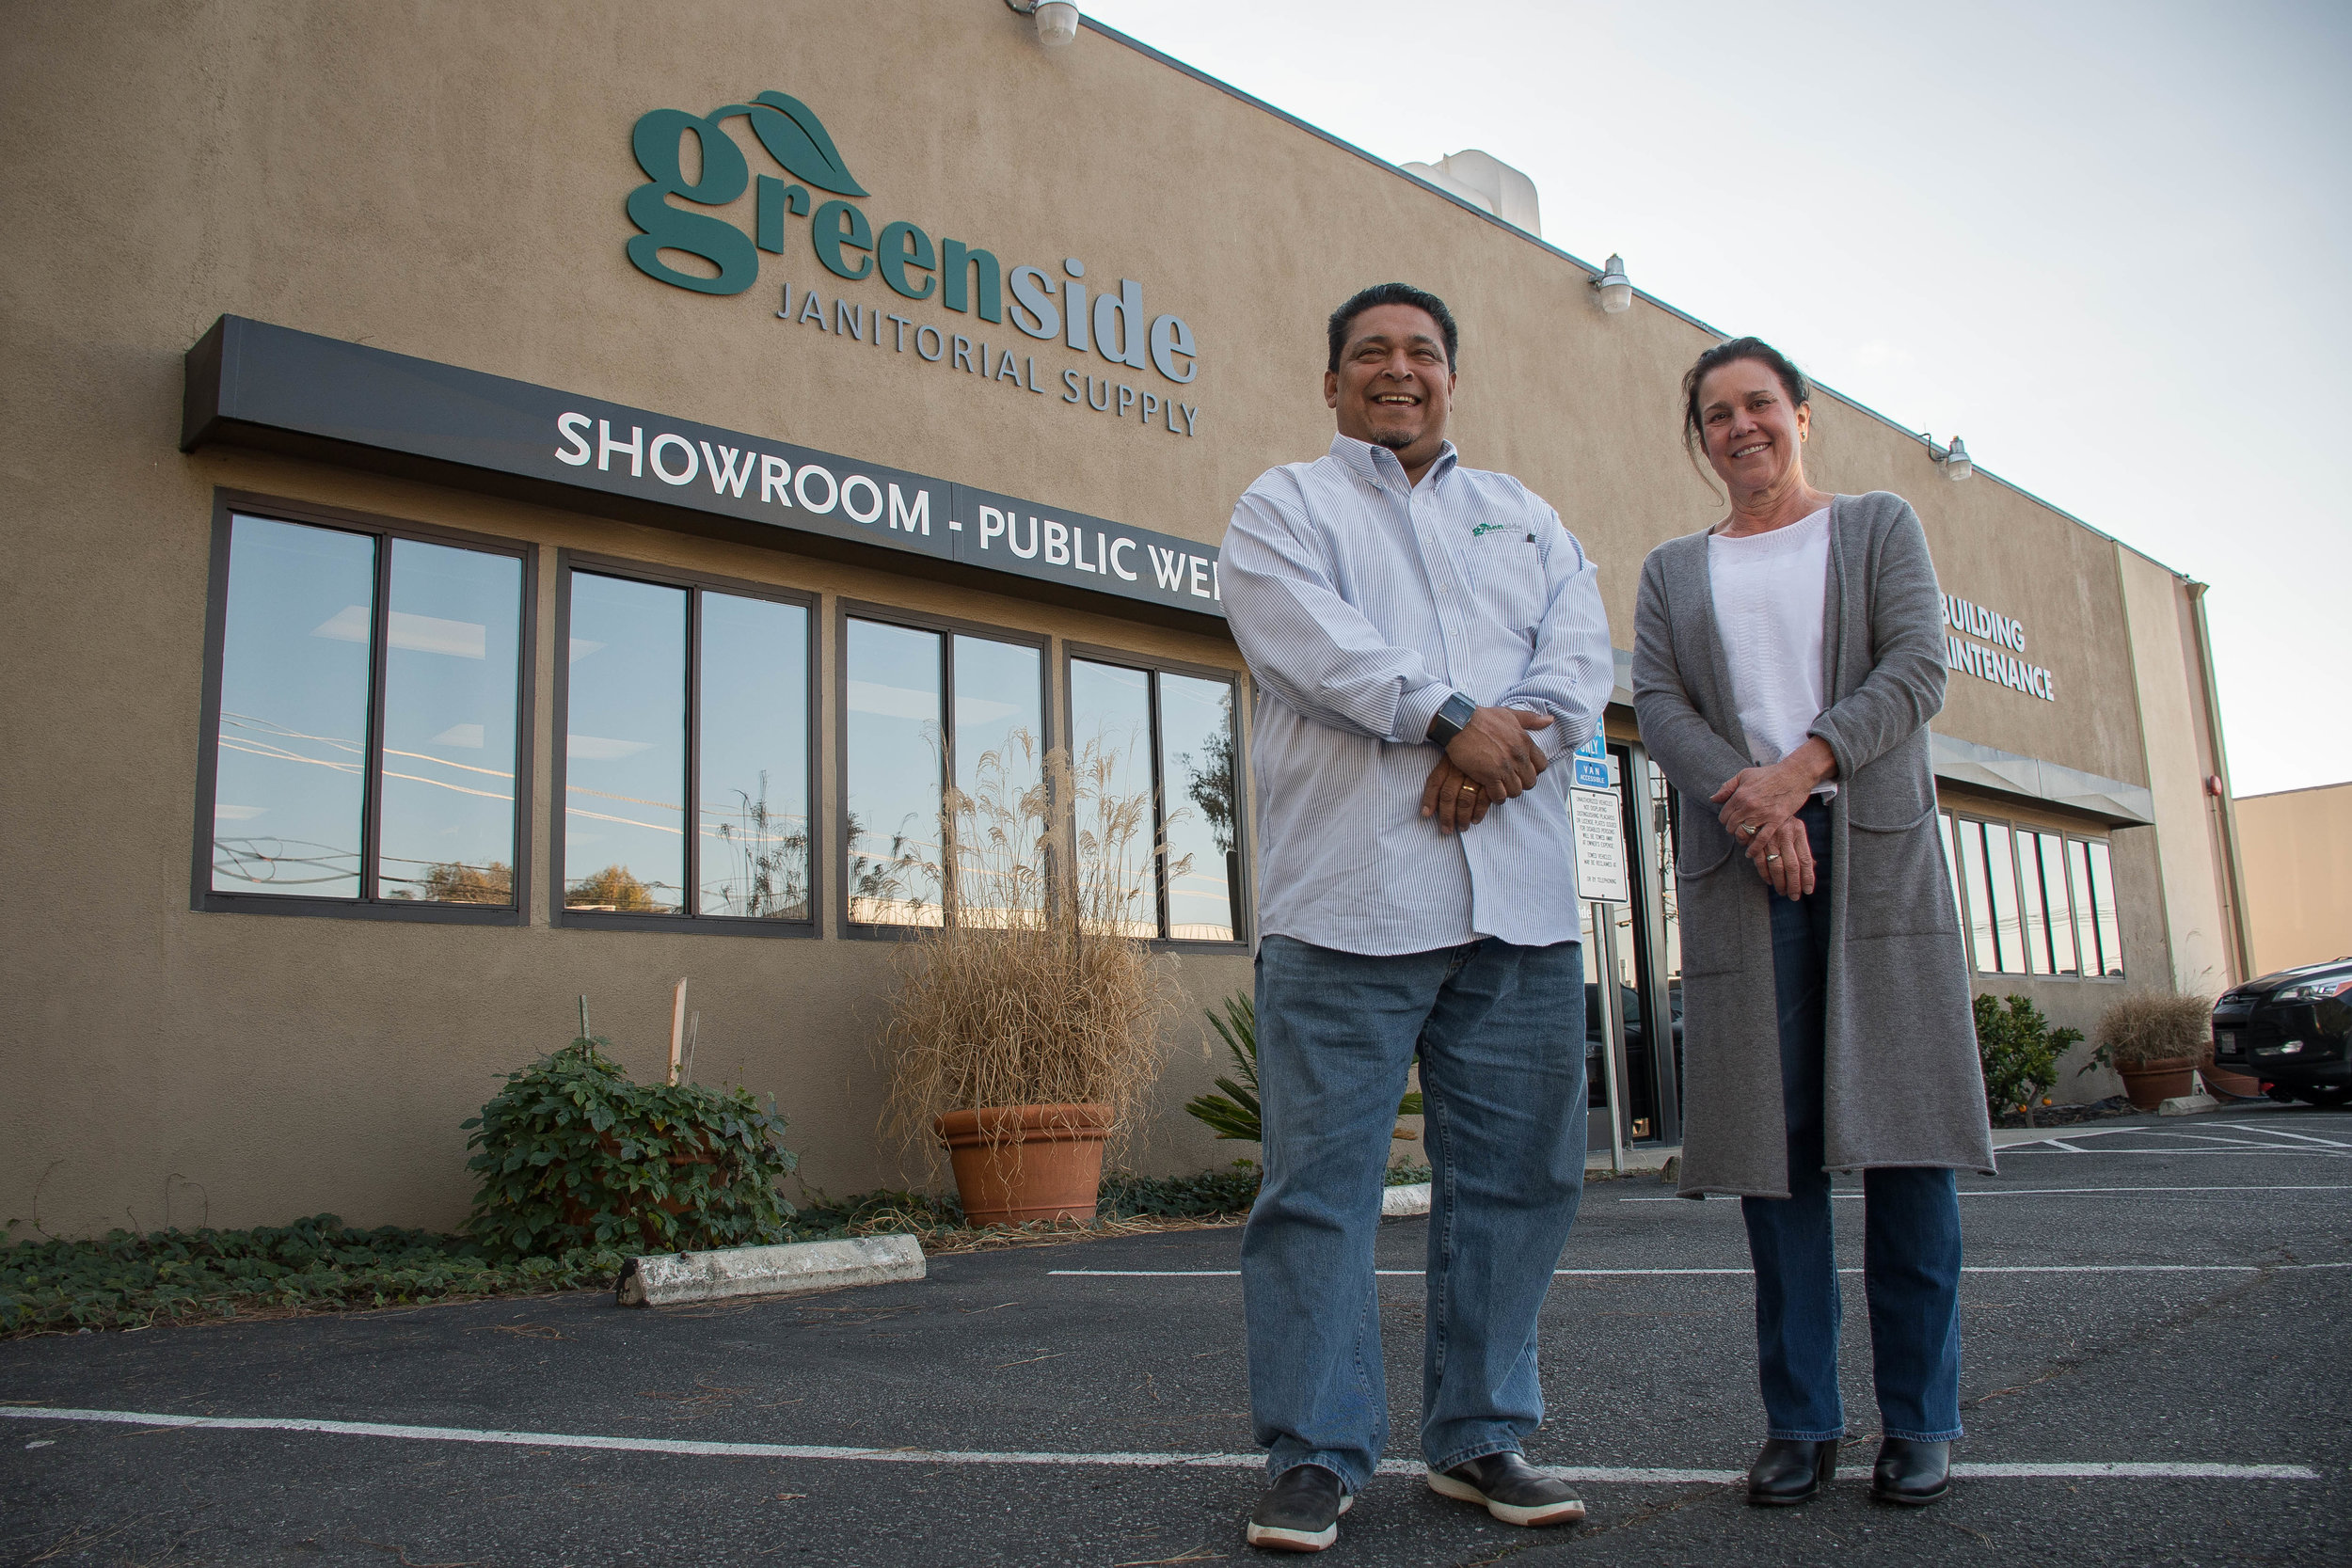 Ernesto Moreno & Stacy Hacker - Co-Founders of Greenside Janitorial Supply